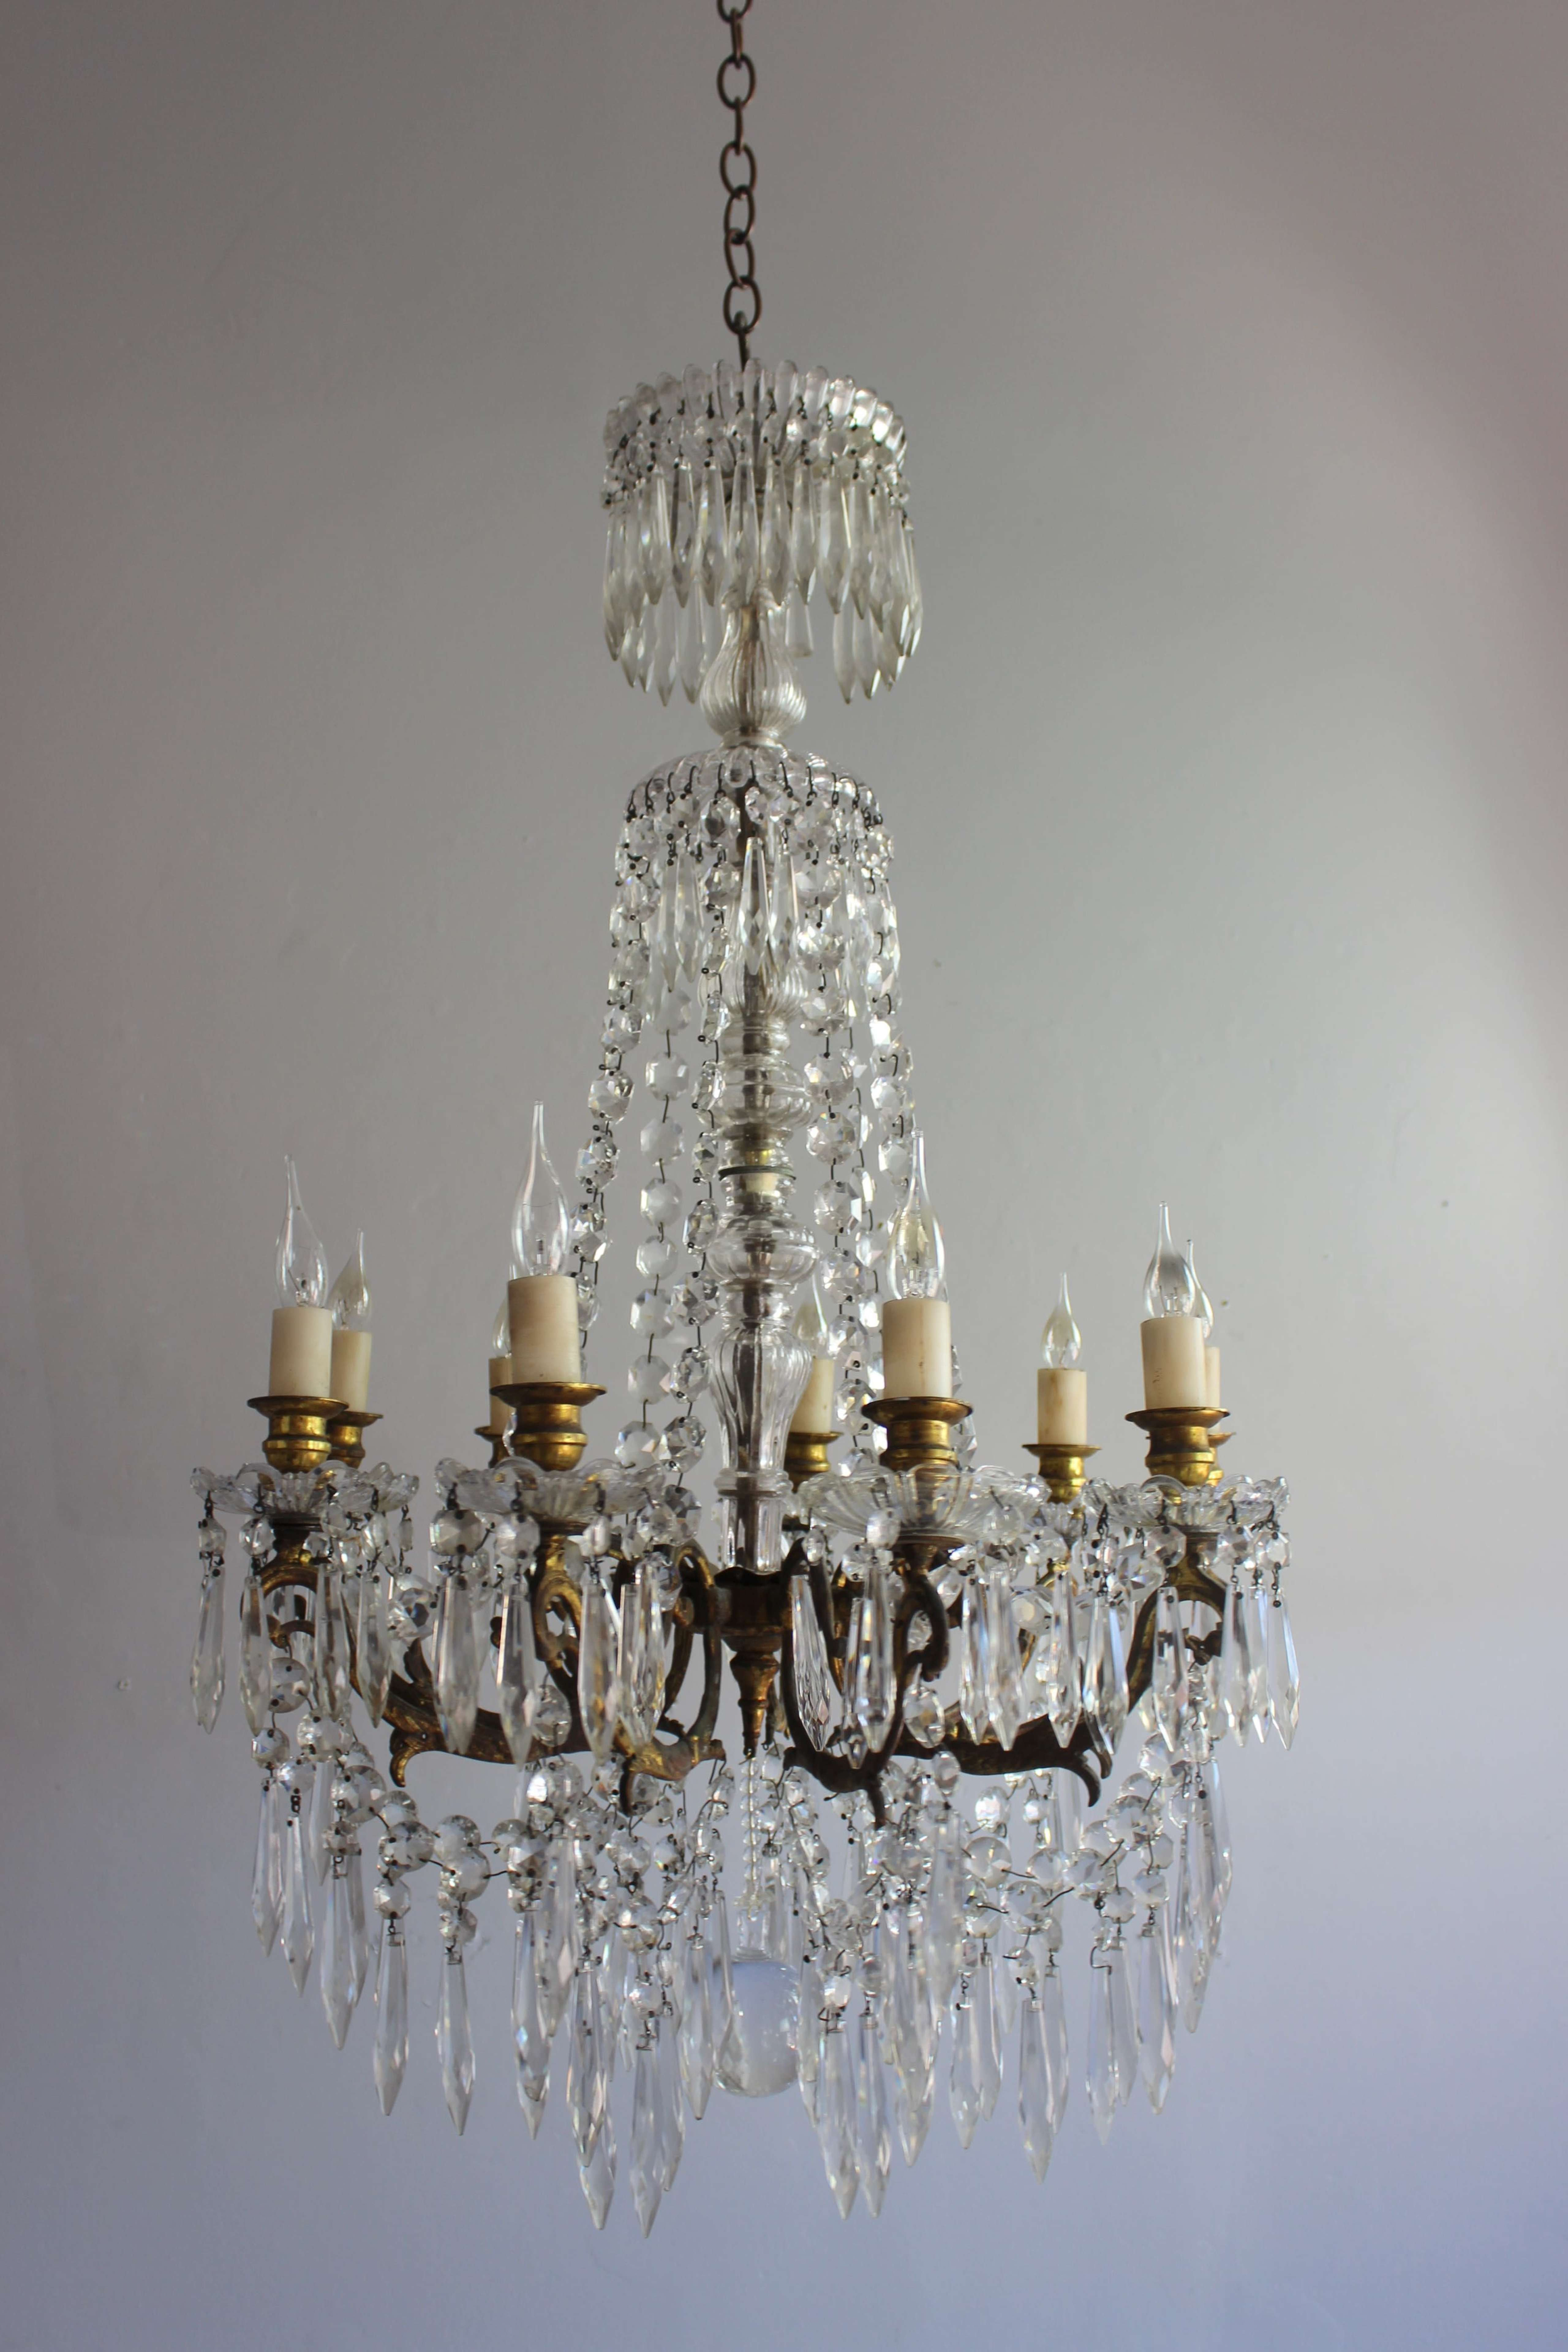 19th C antique chandelier in the Napoleon 111 style